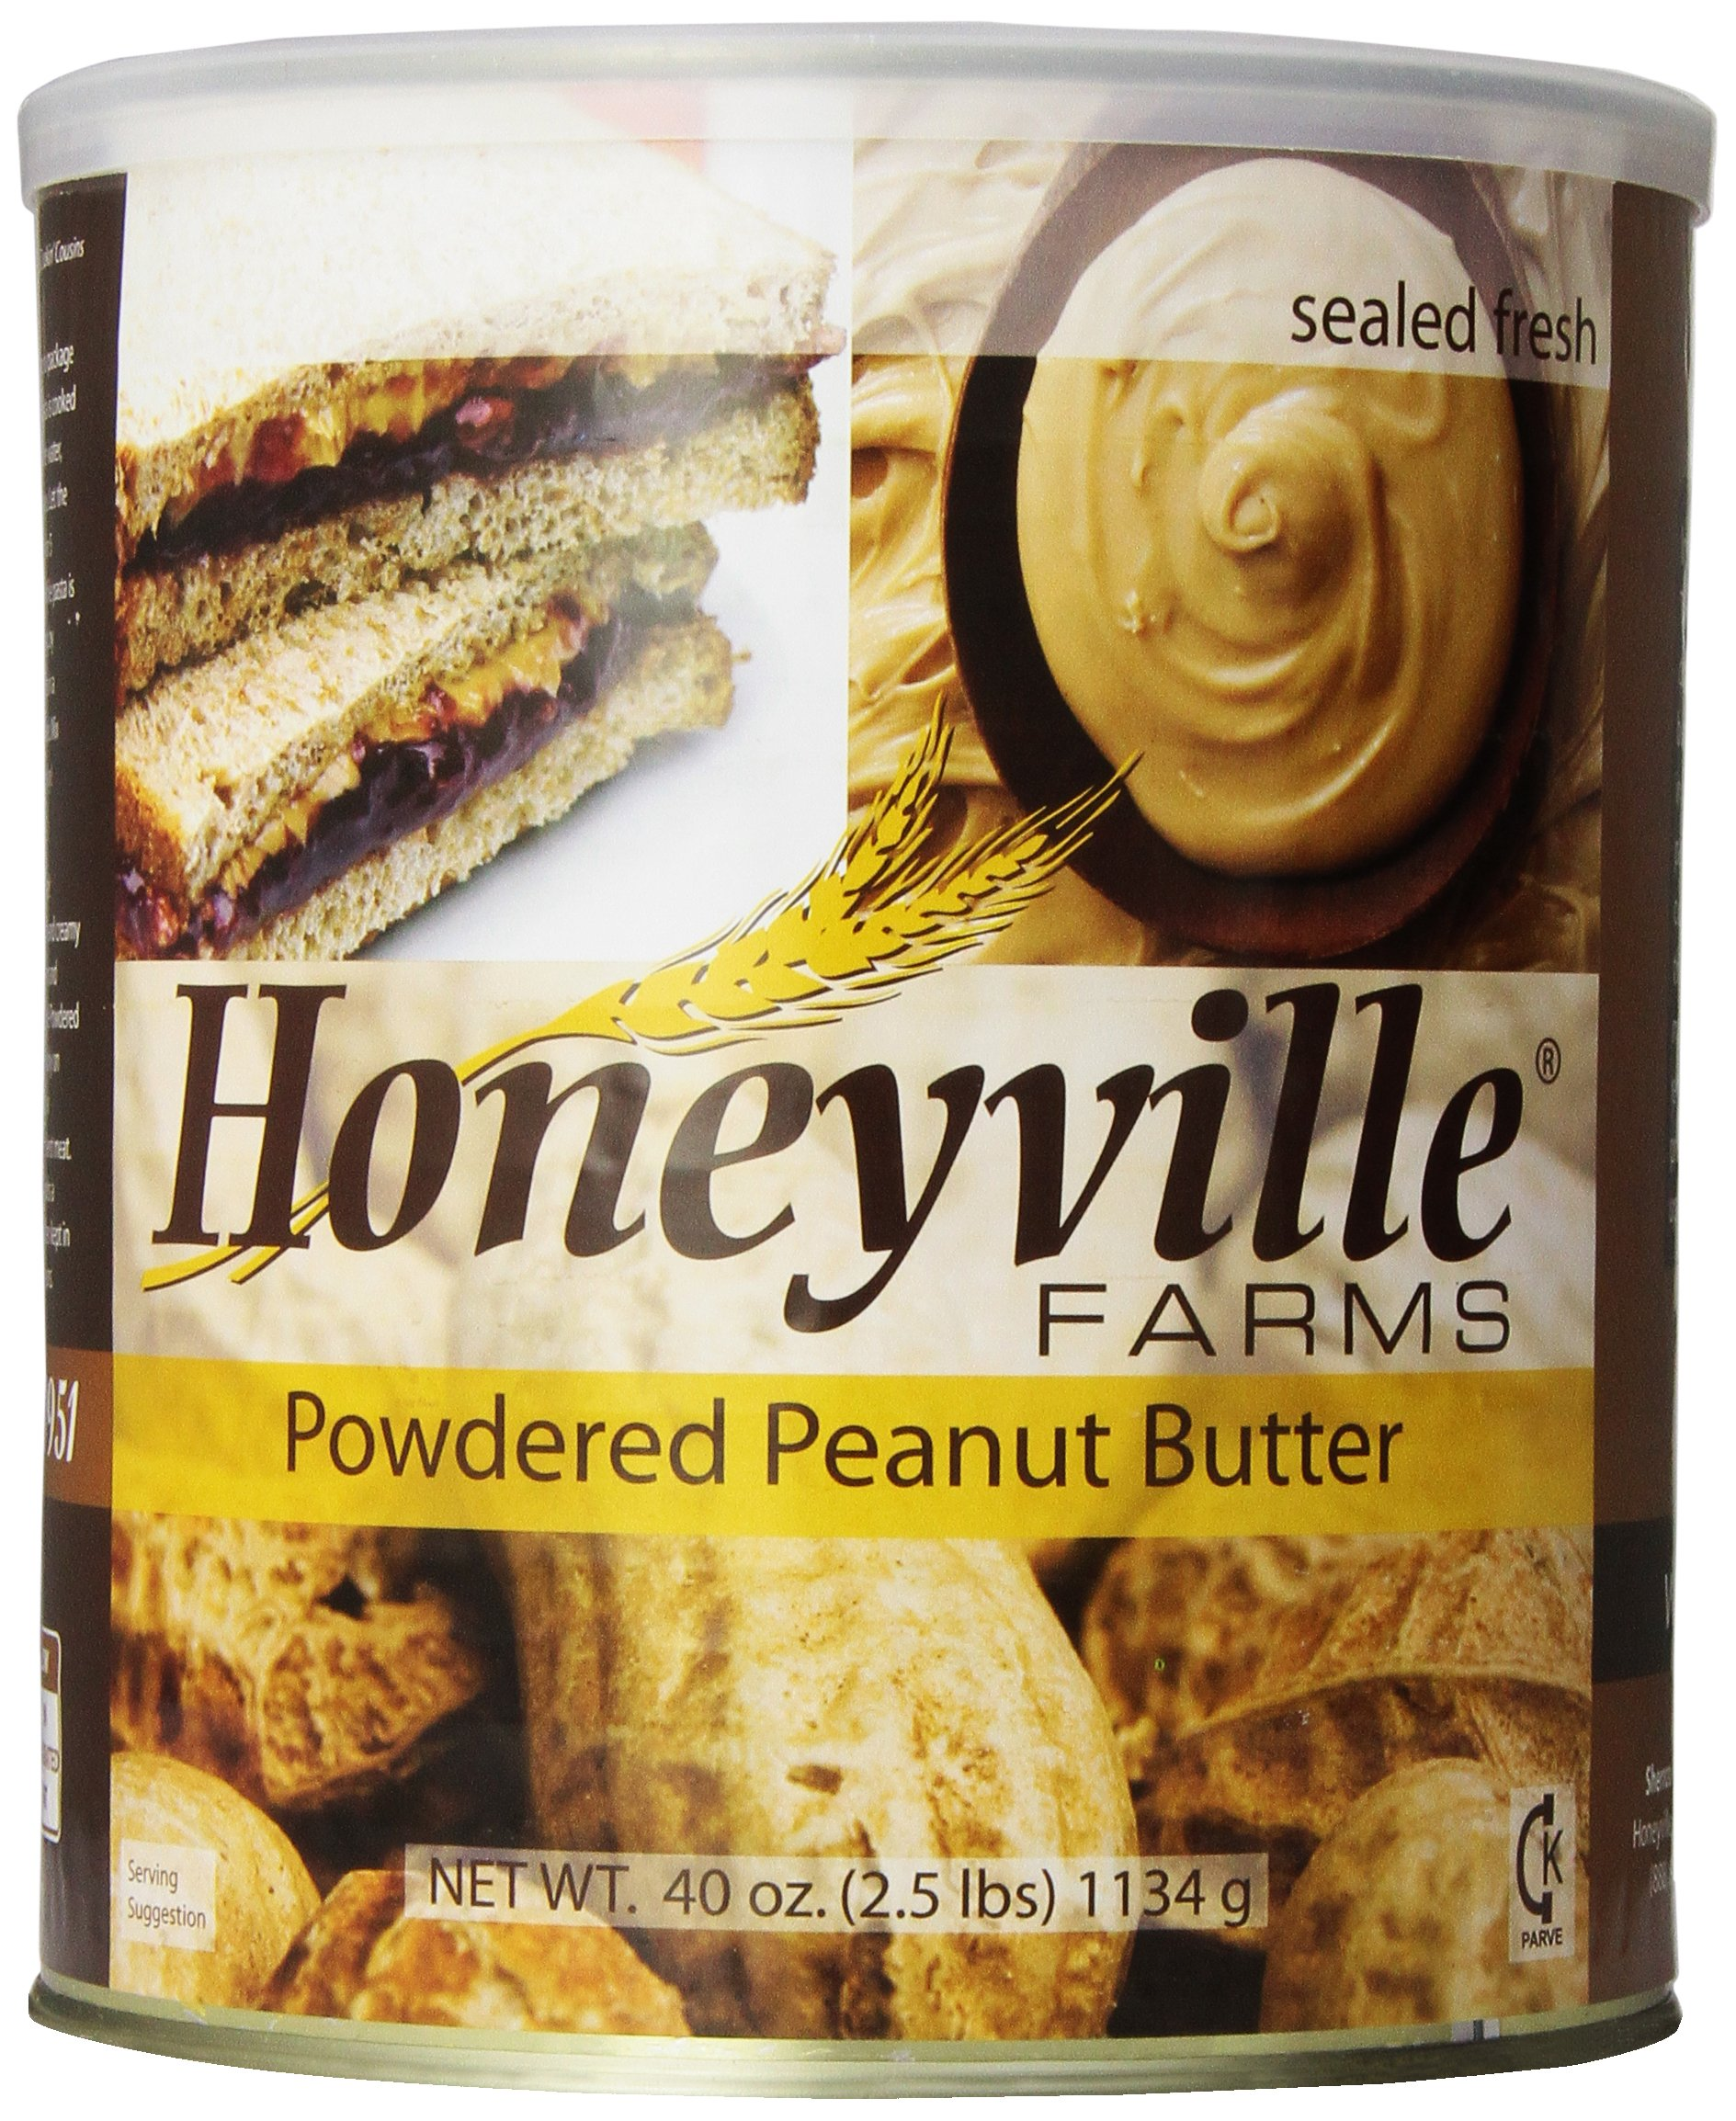 Powdered Peanut Butter- 2.5 Pound Can by Honeyville